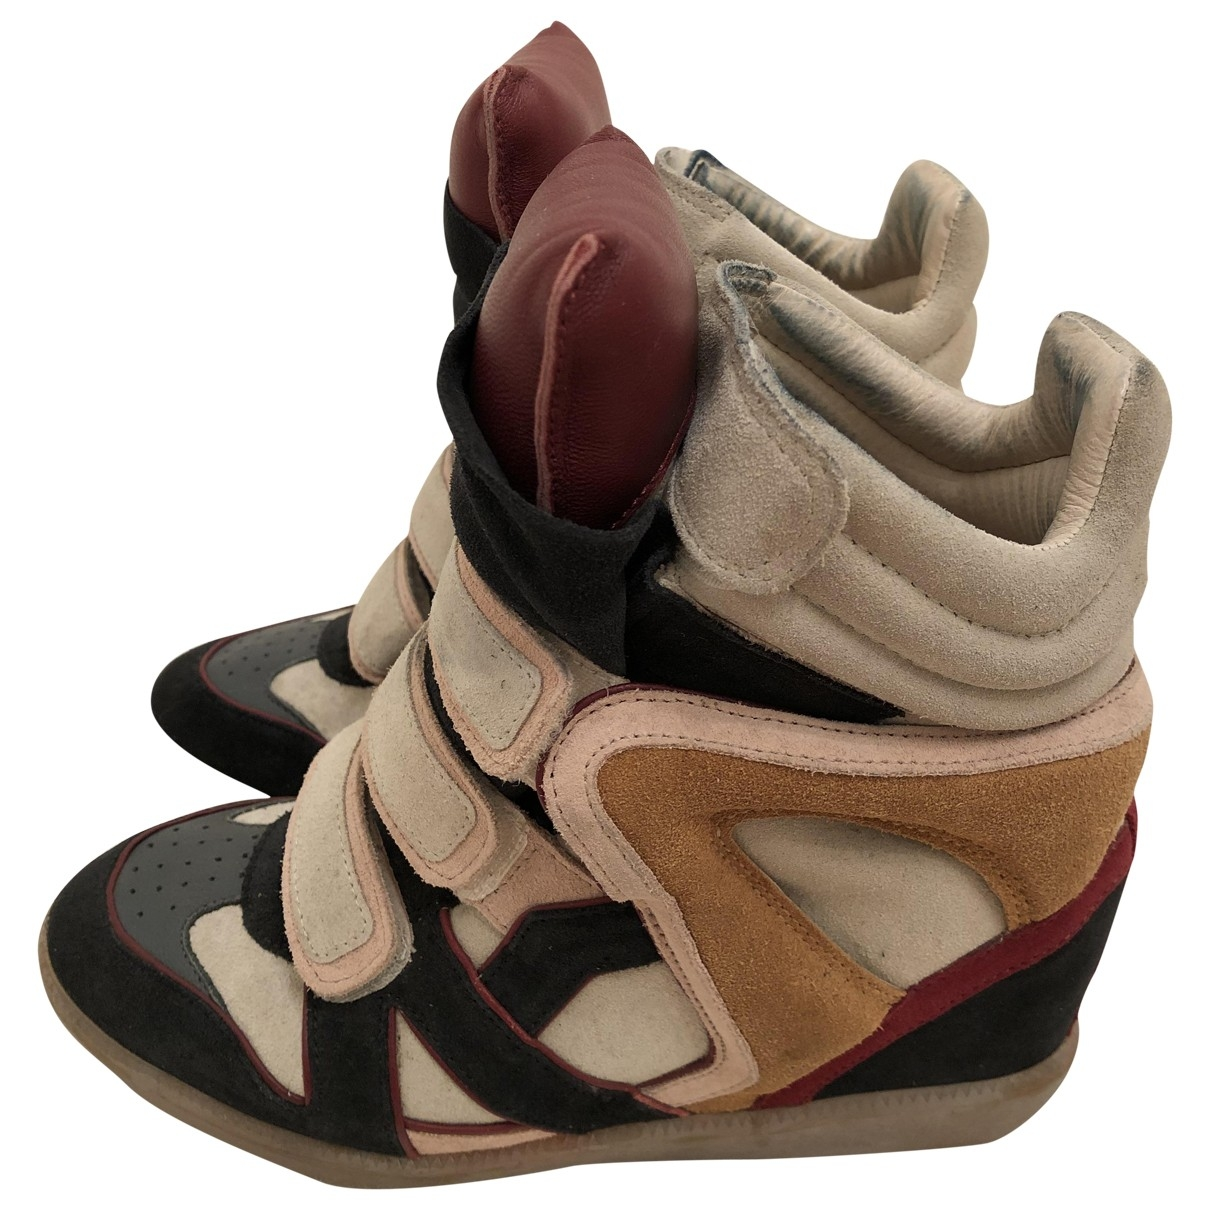 Isabel Marant Bayley Multicolour Suede Trainers for Women 38 EU